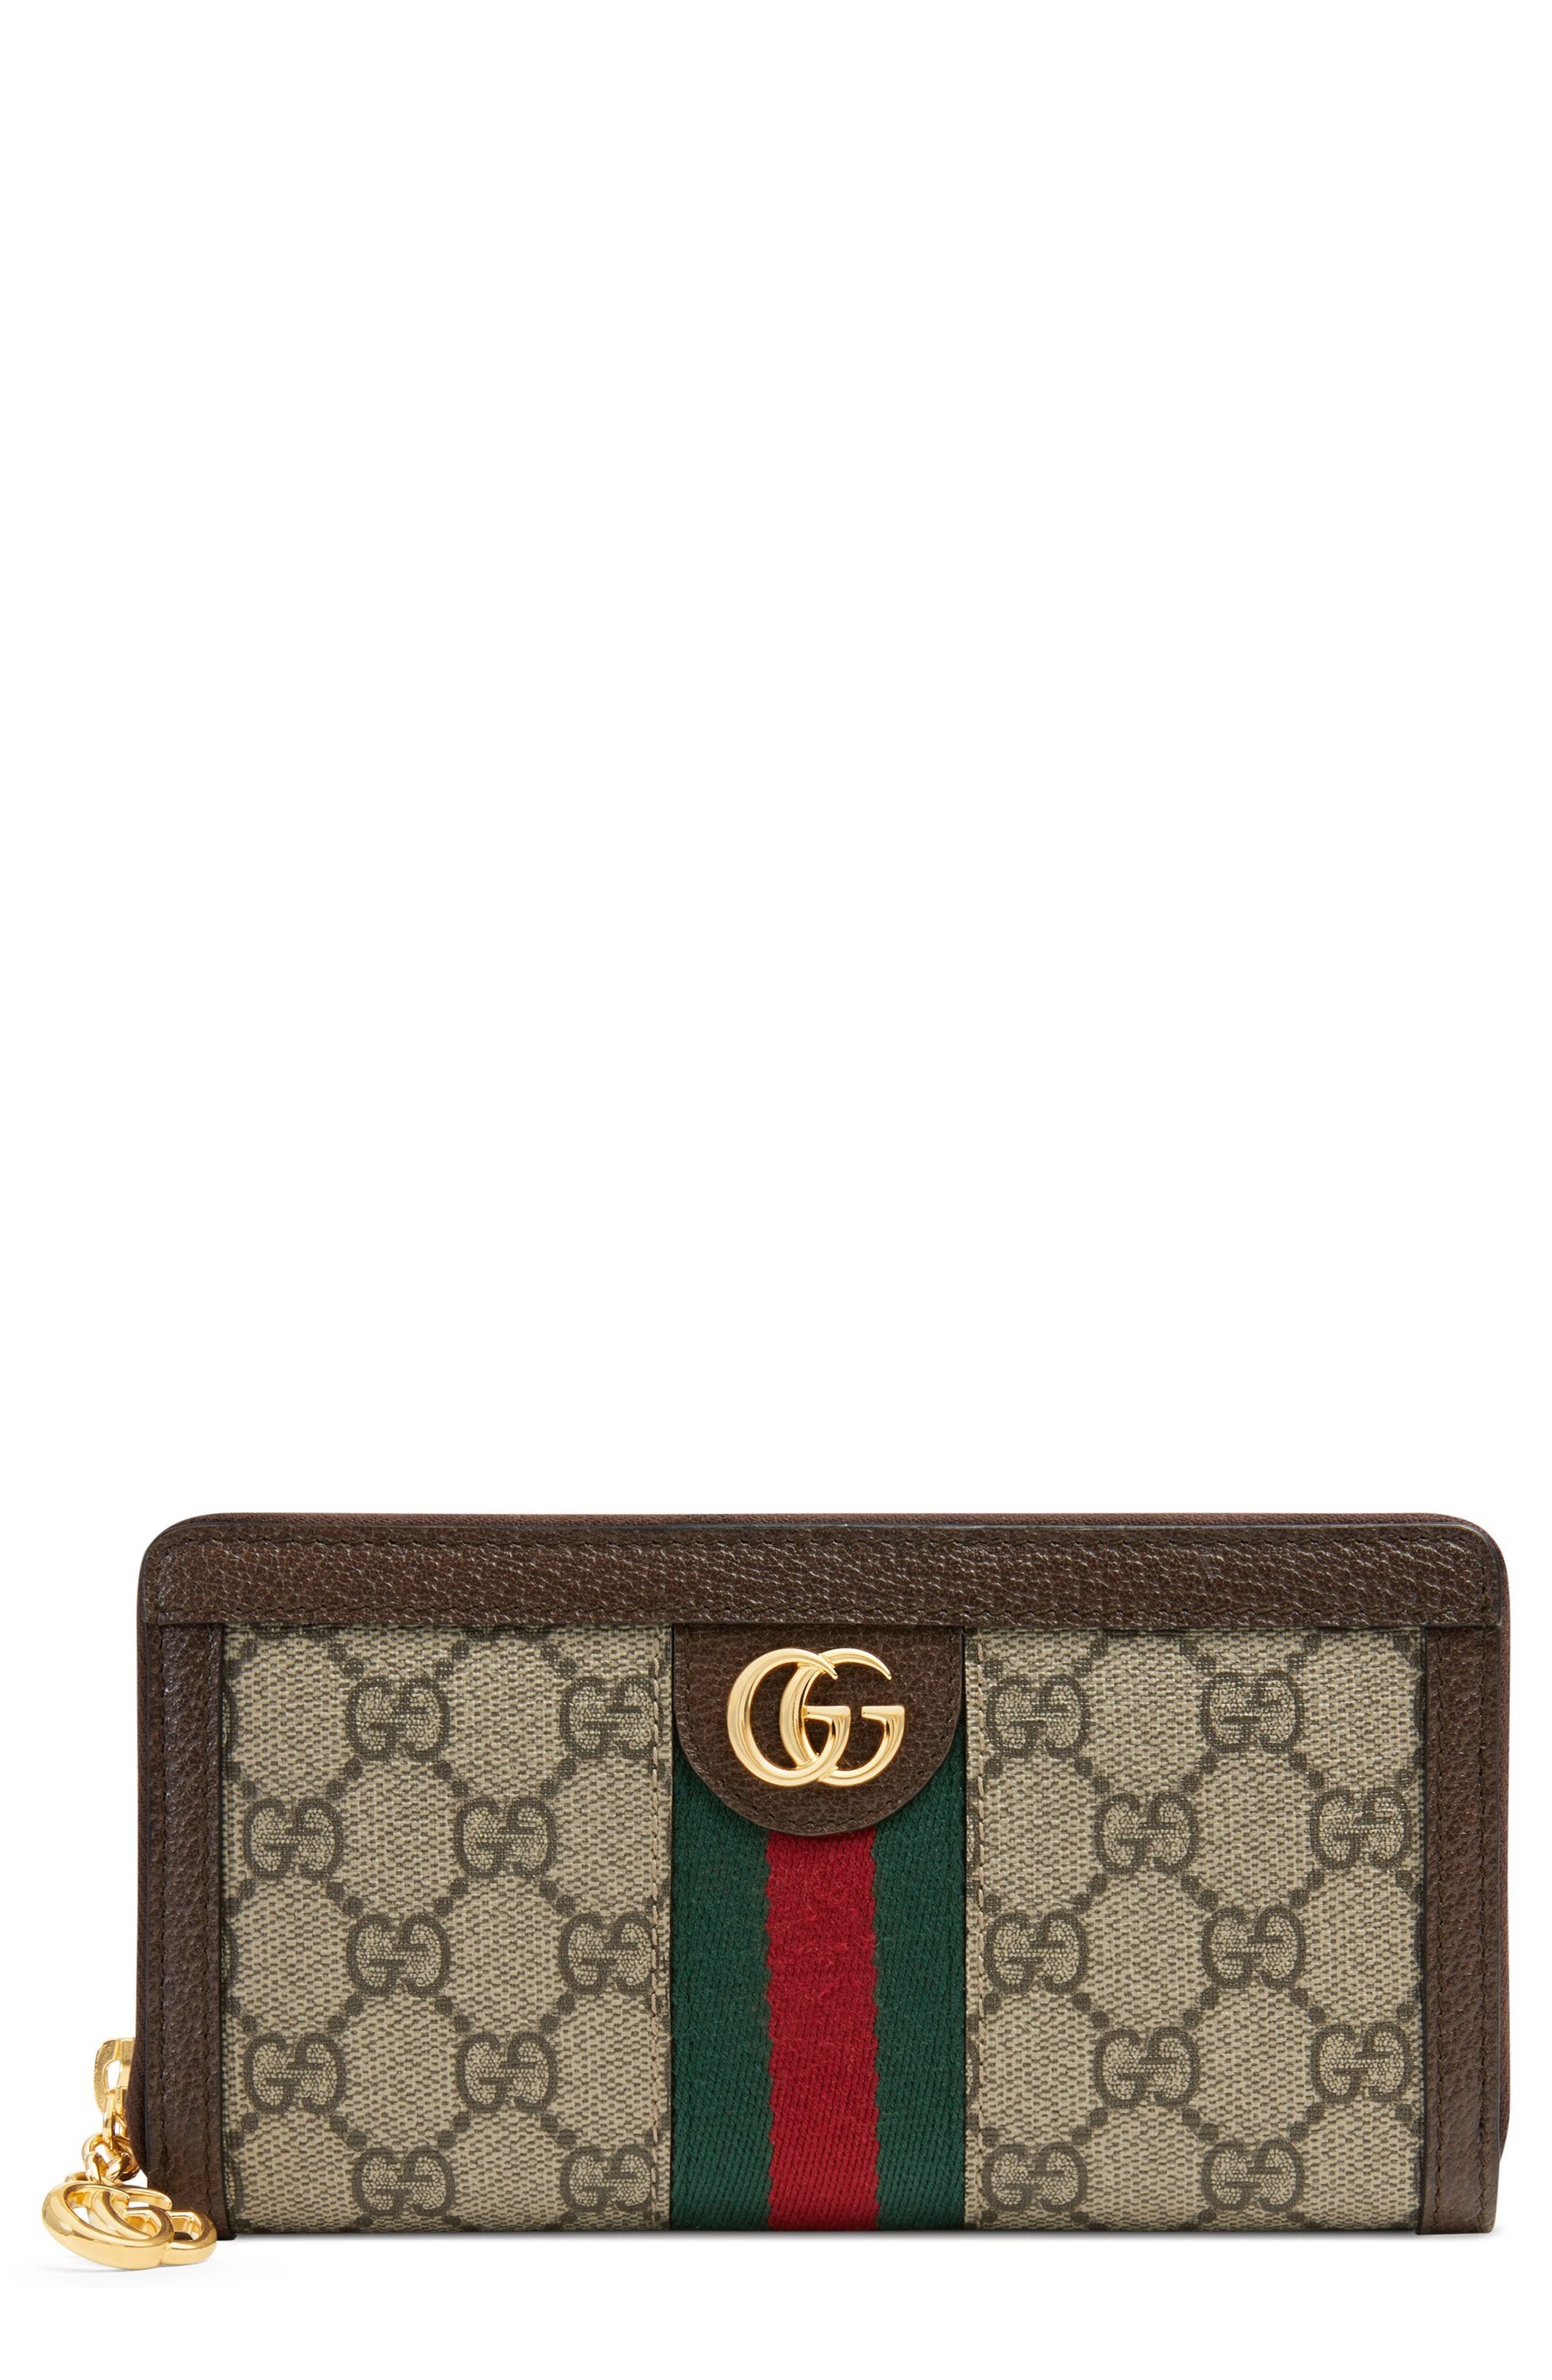 GUCCI Ophidia GG Supreme Zip-Around Wallet, Main, color, BEIGE EBONY/ ACERO/ VERT RED